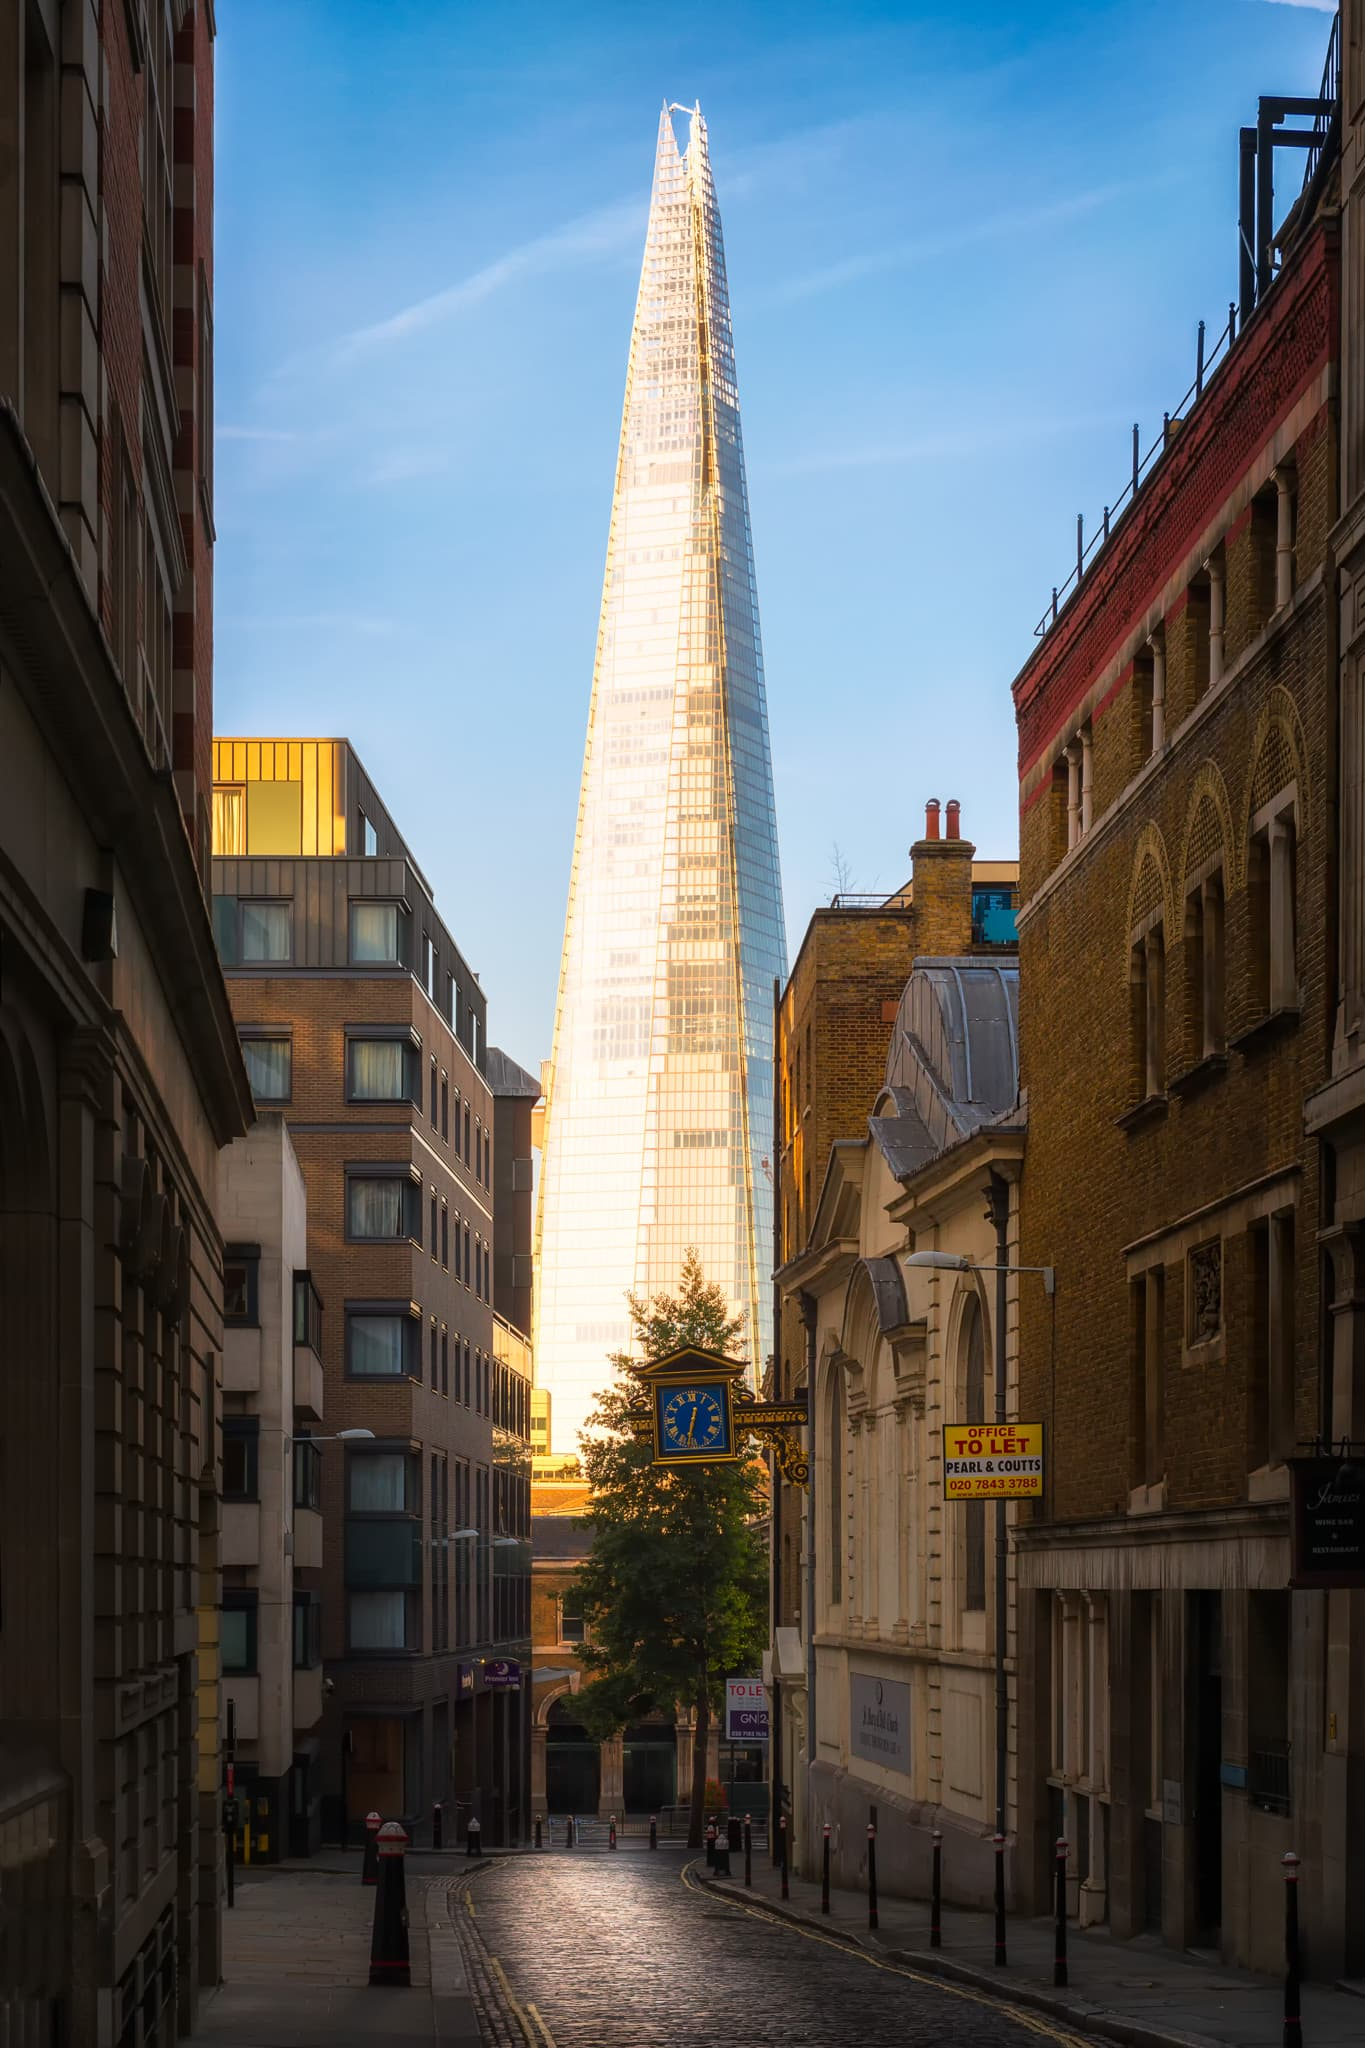 The Shard | London, England